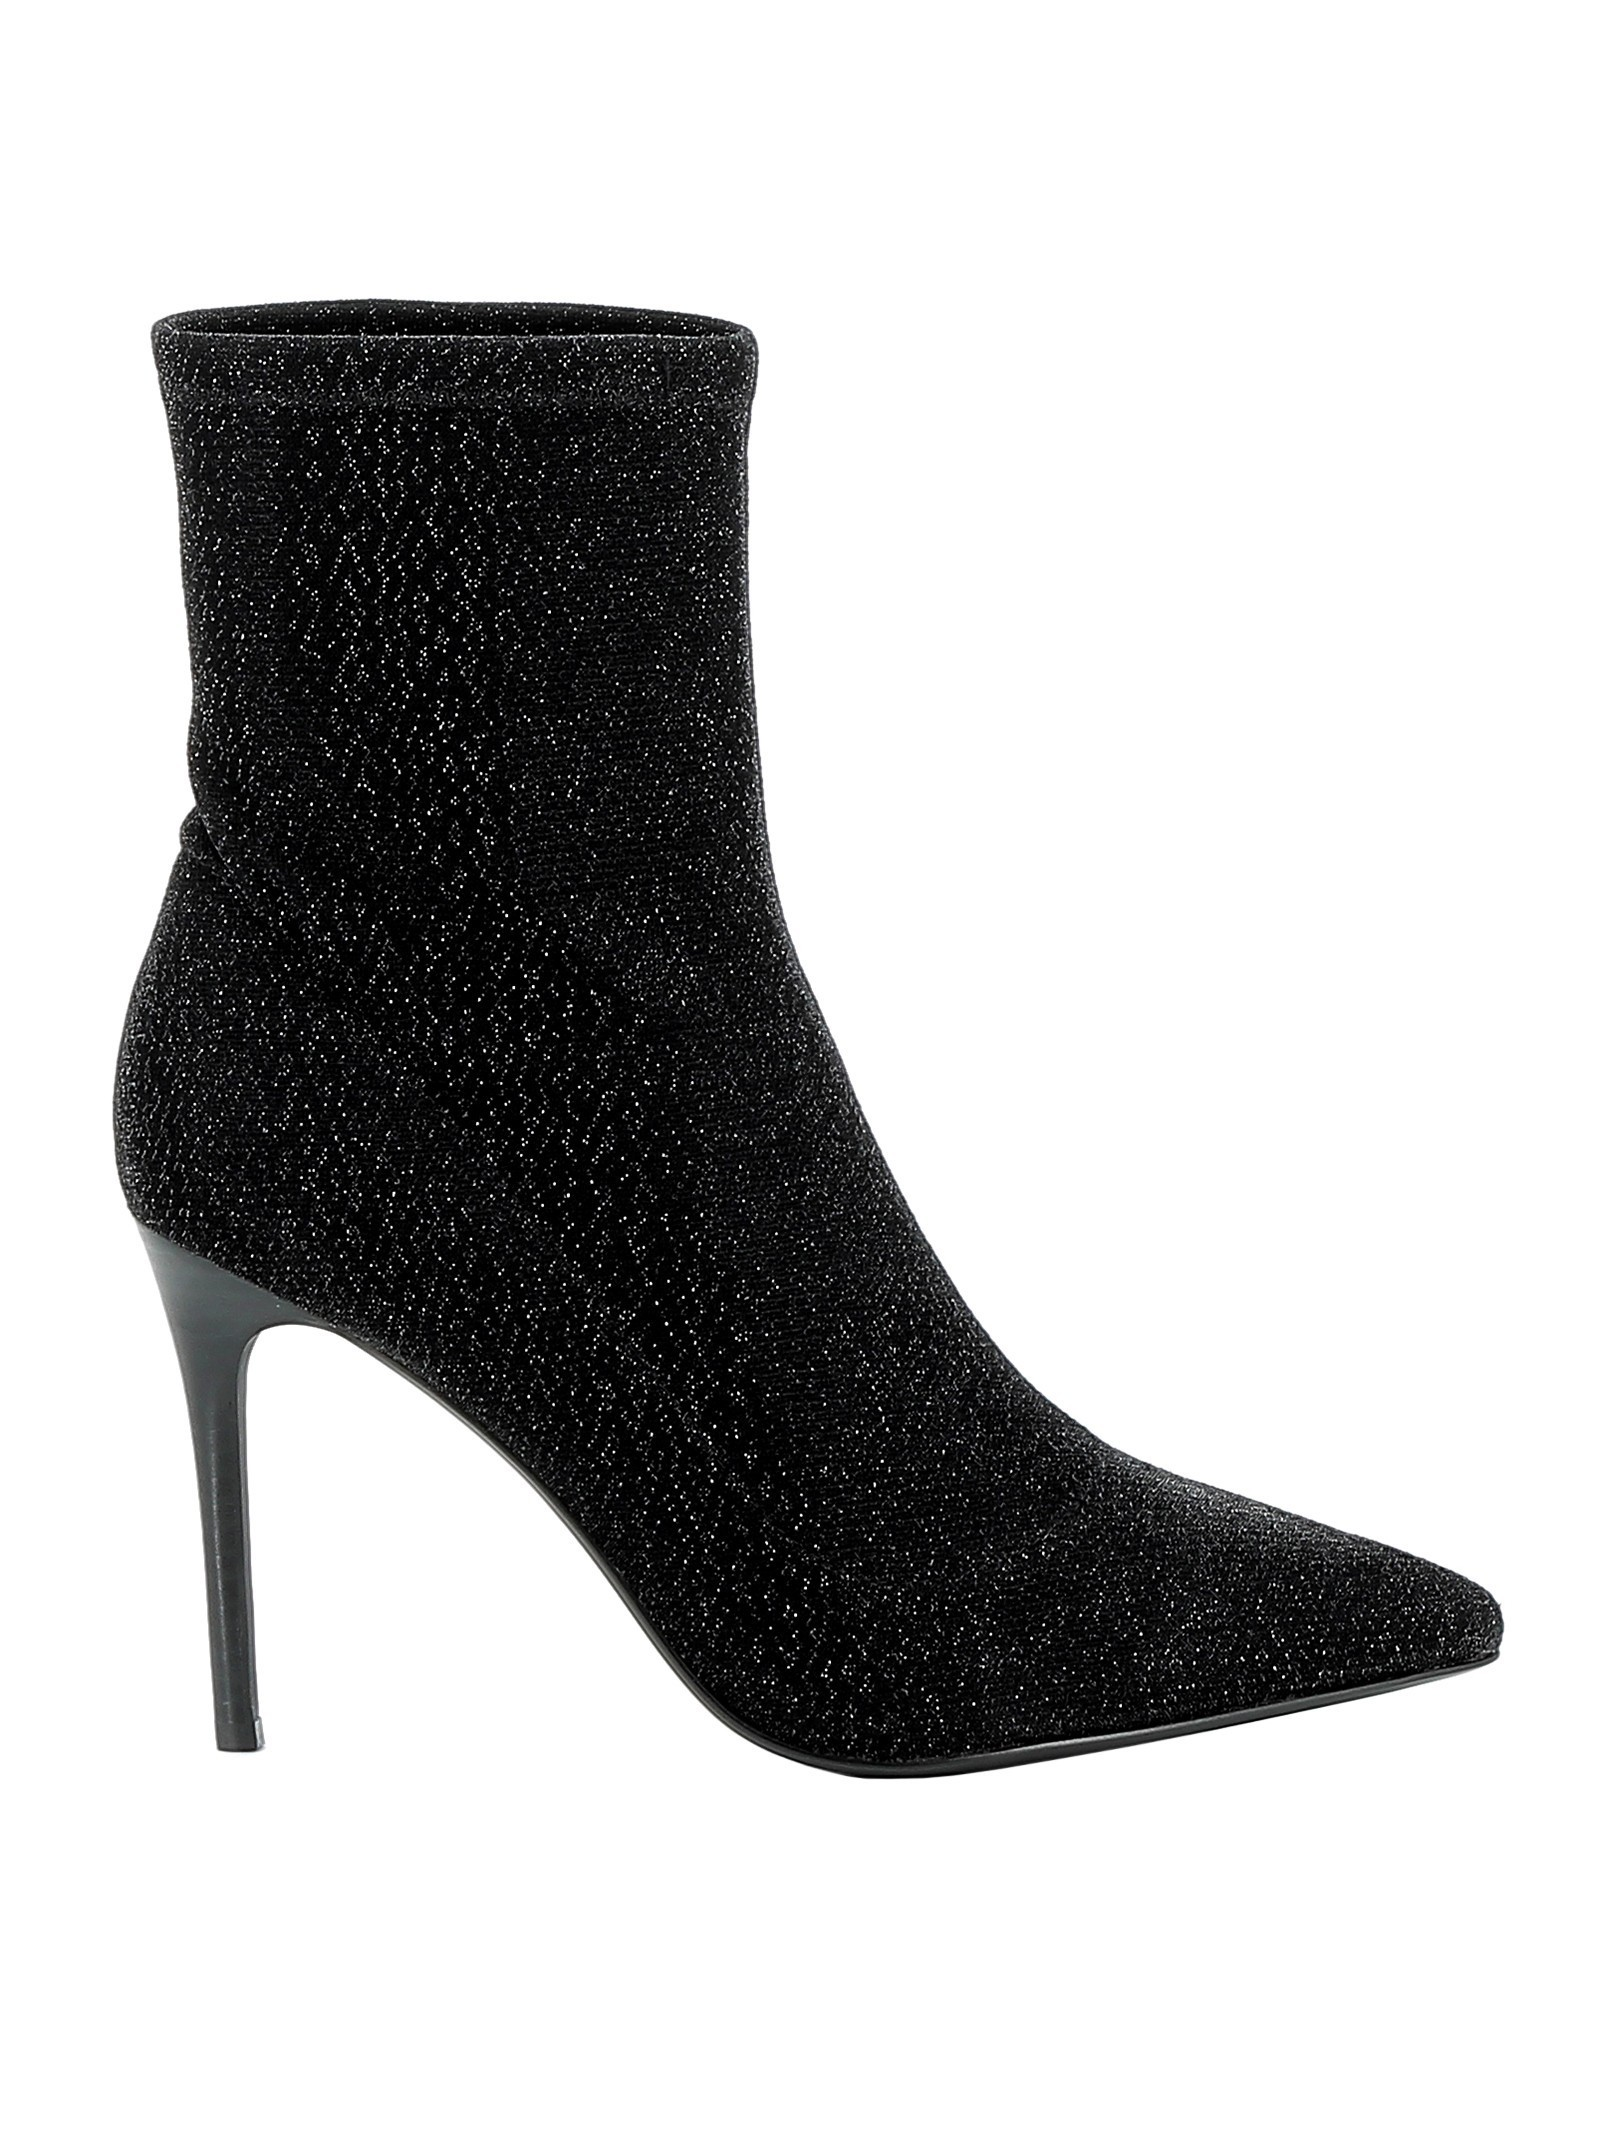 shop kendall + kylie shoes